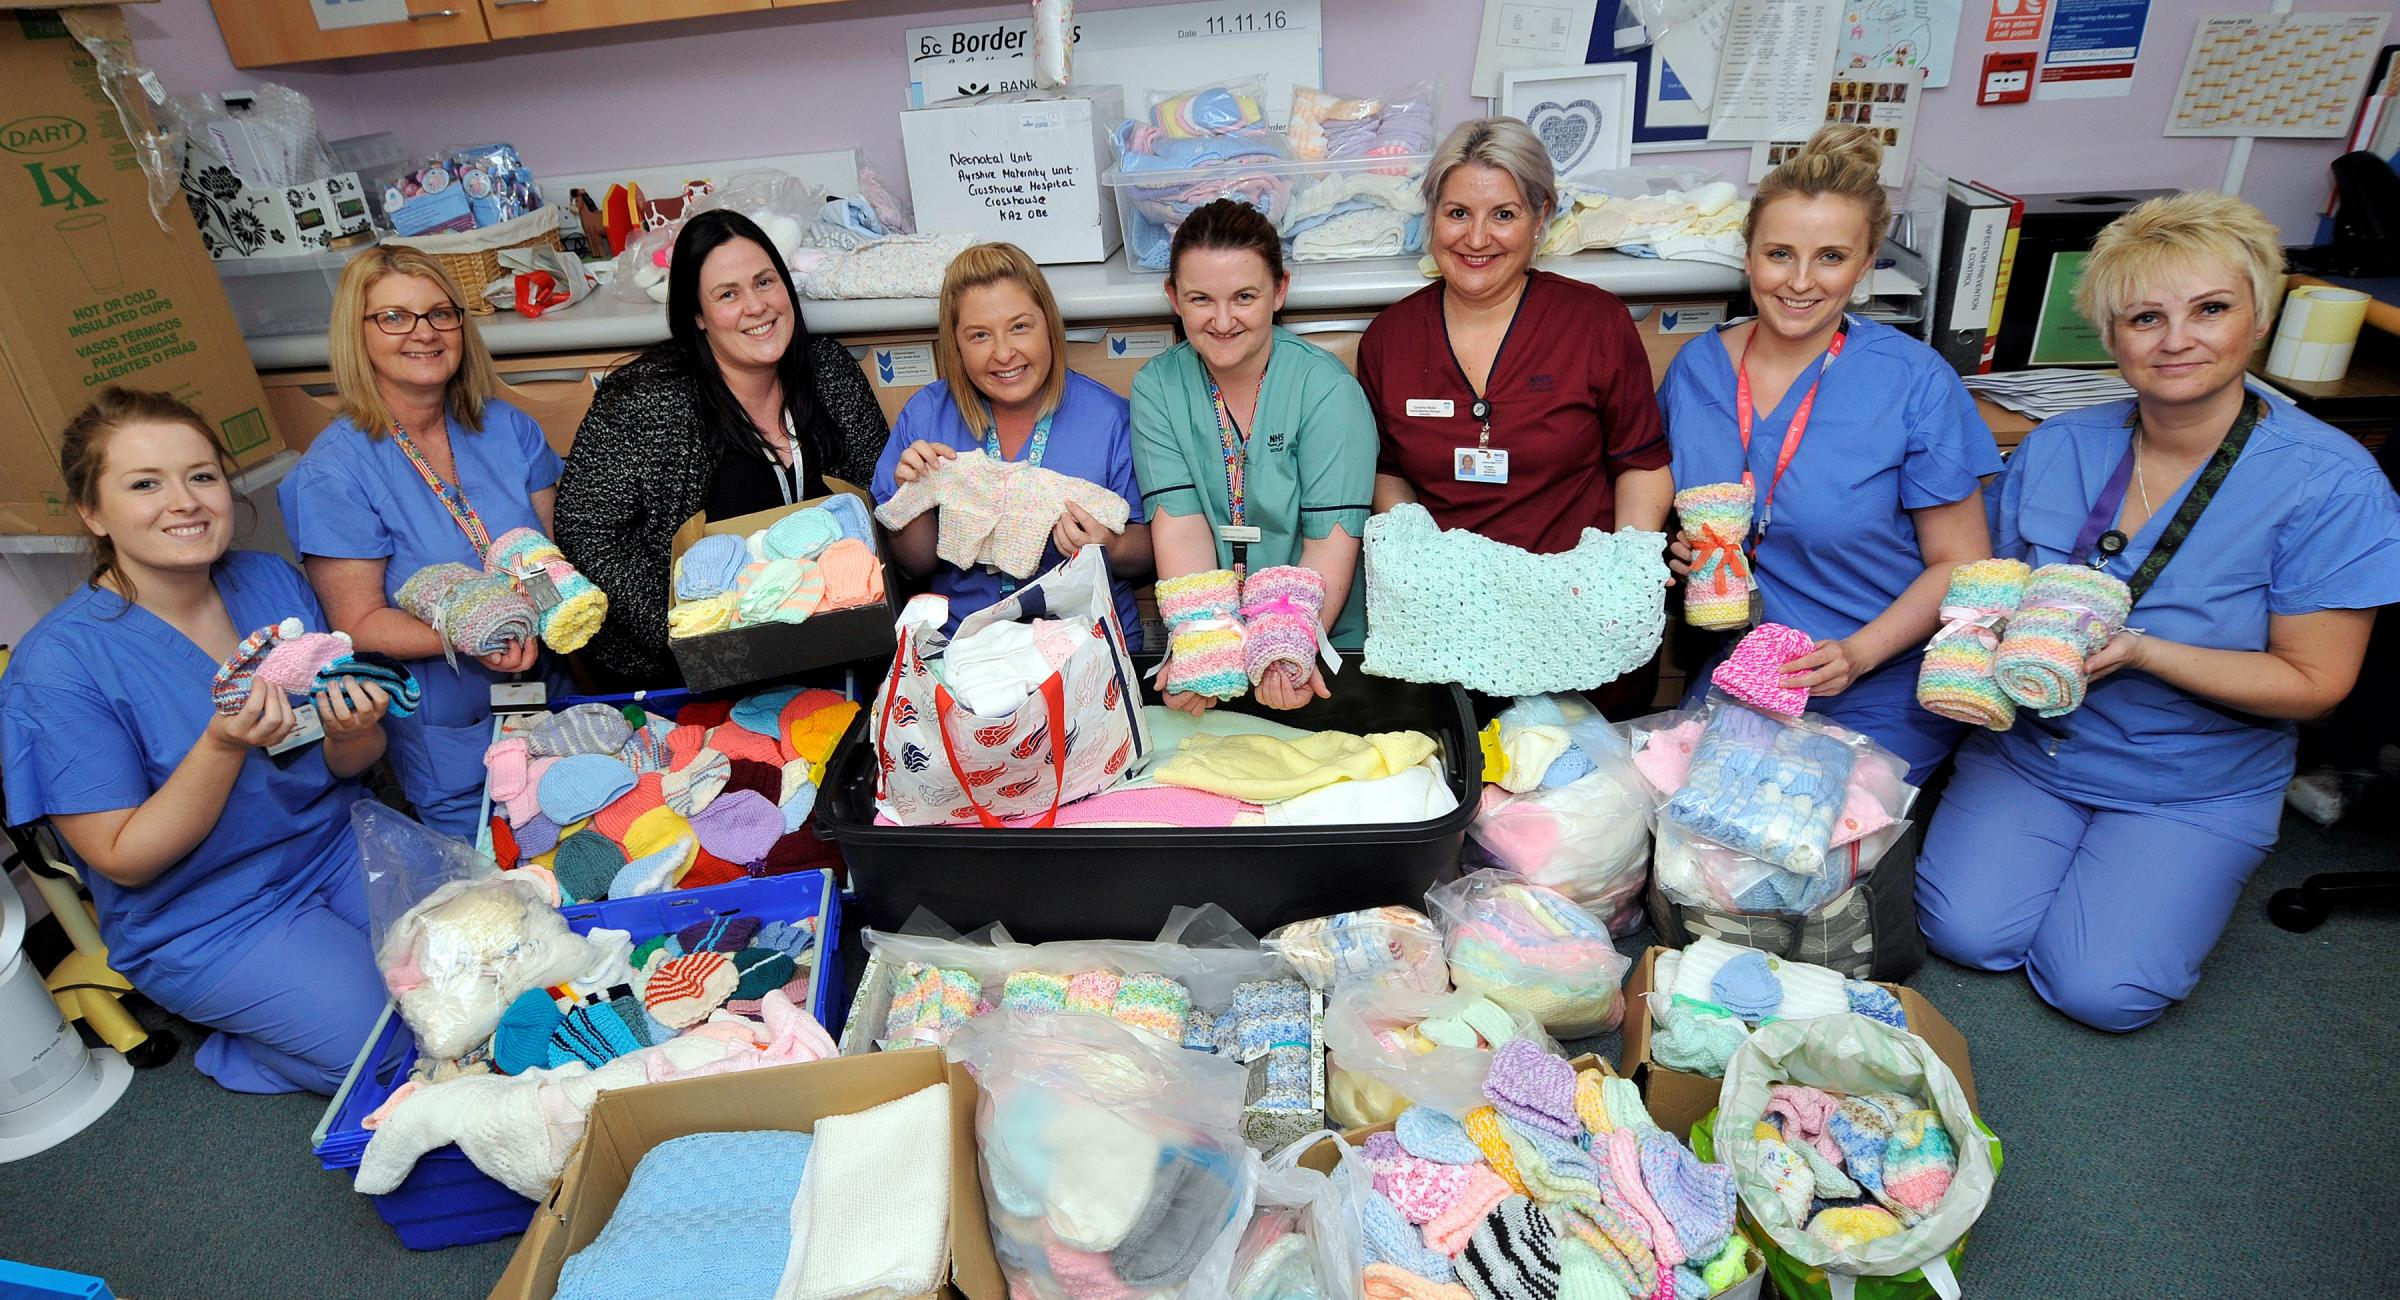 Knitters come to the rescue of flooded maternity unit